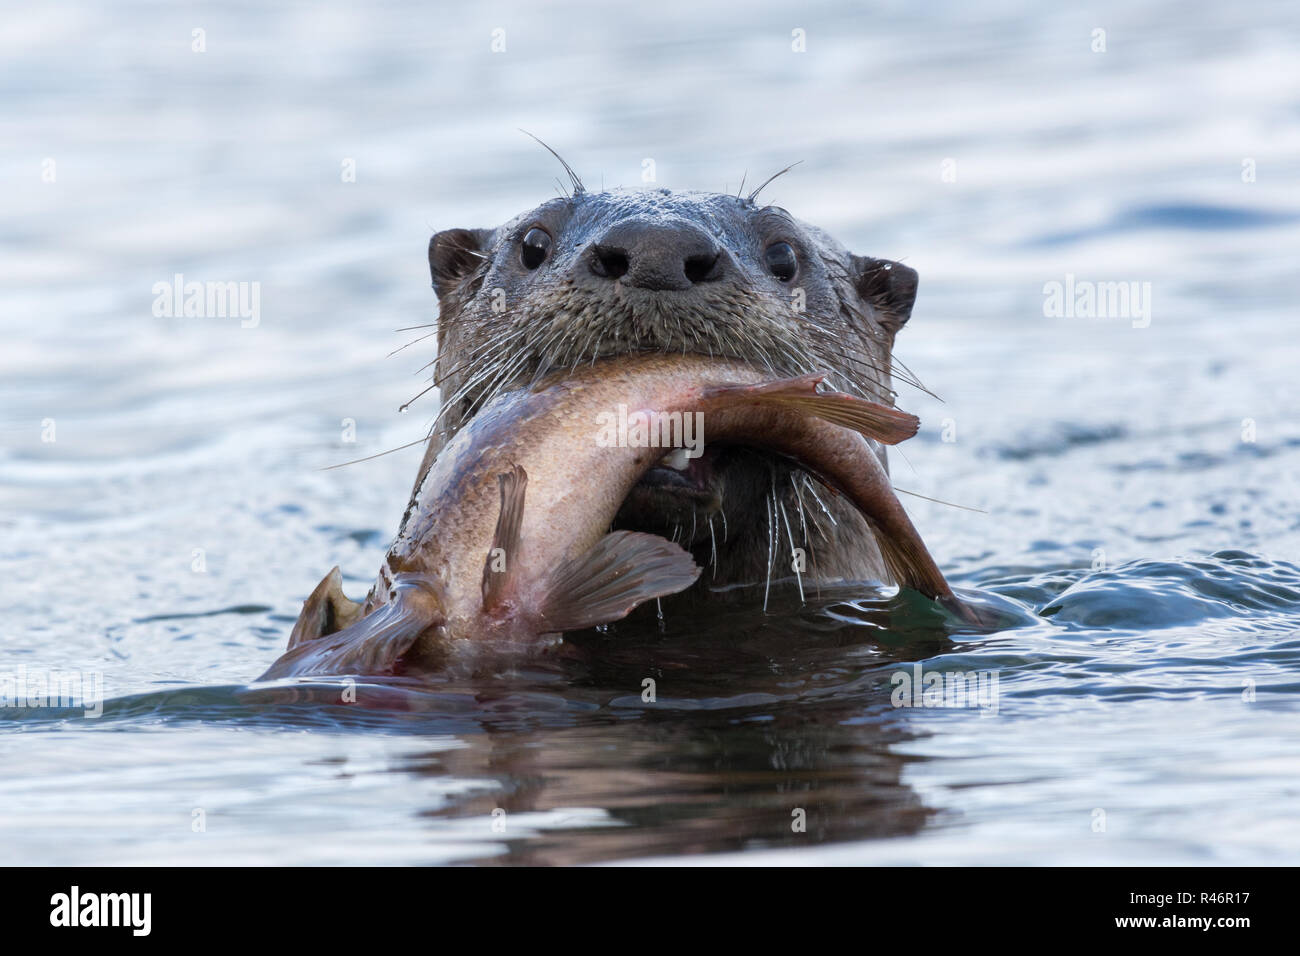 River Otter with Rock Cod - Camouflage clothing and gear